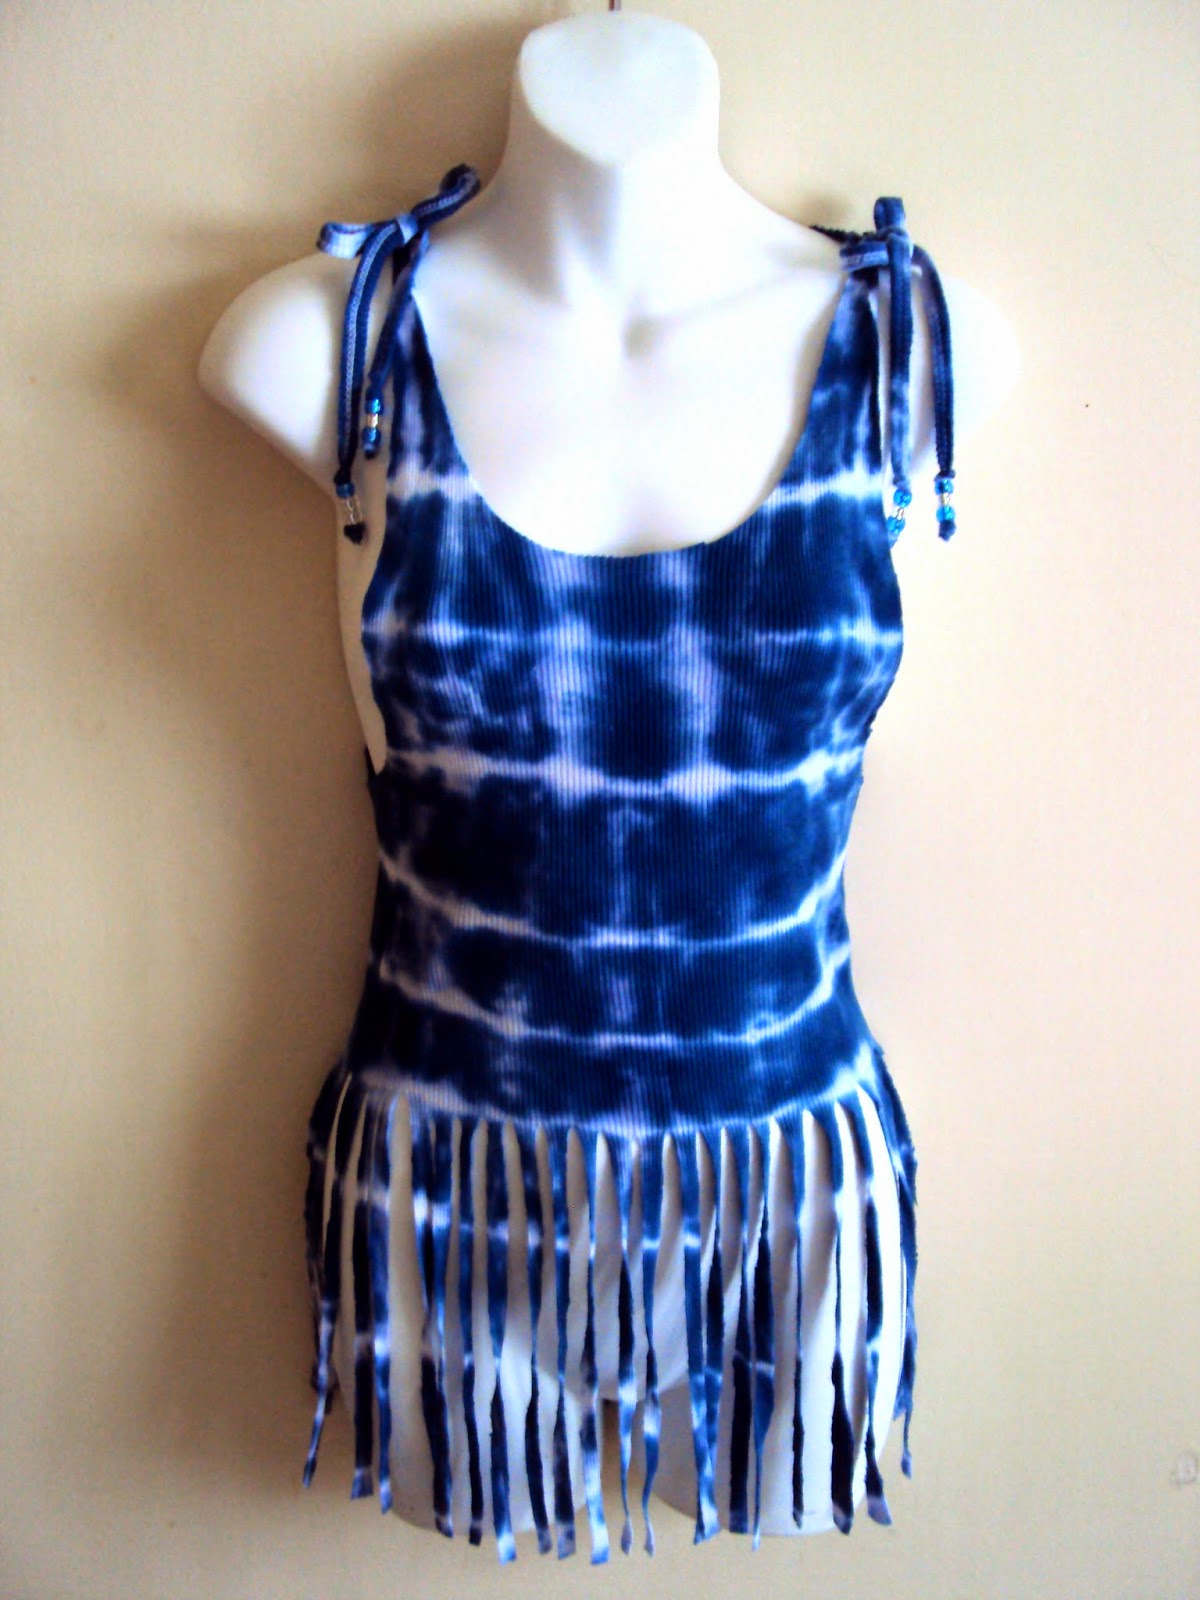 https://www.etsy.com/listing/225583342/indigo-tie-dye-tank-top-hand-painted-t?ref=shop_home_active_11